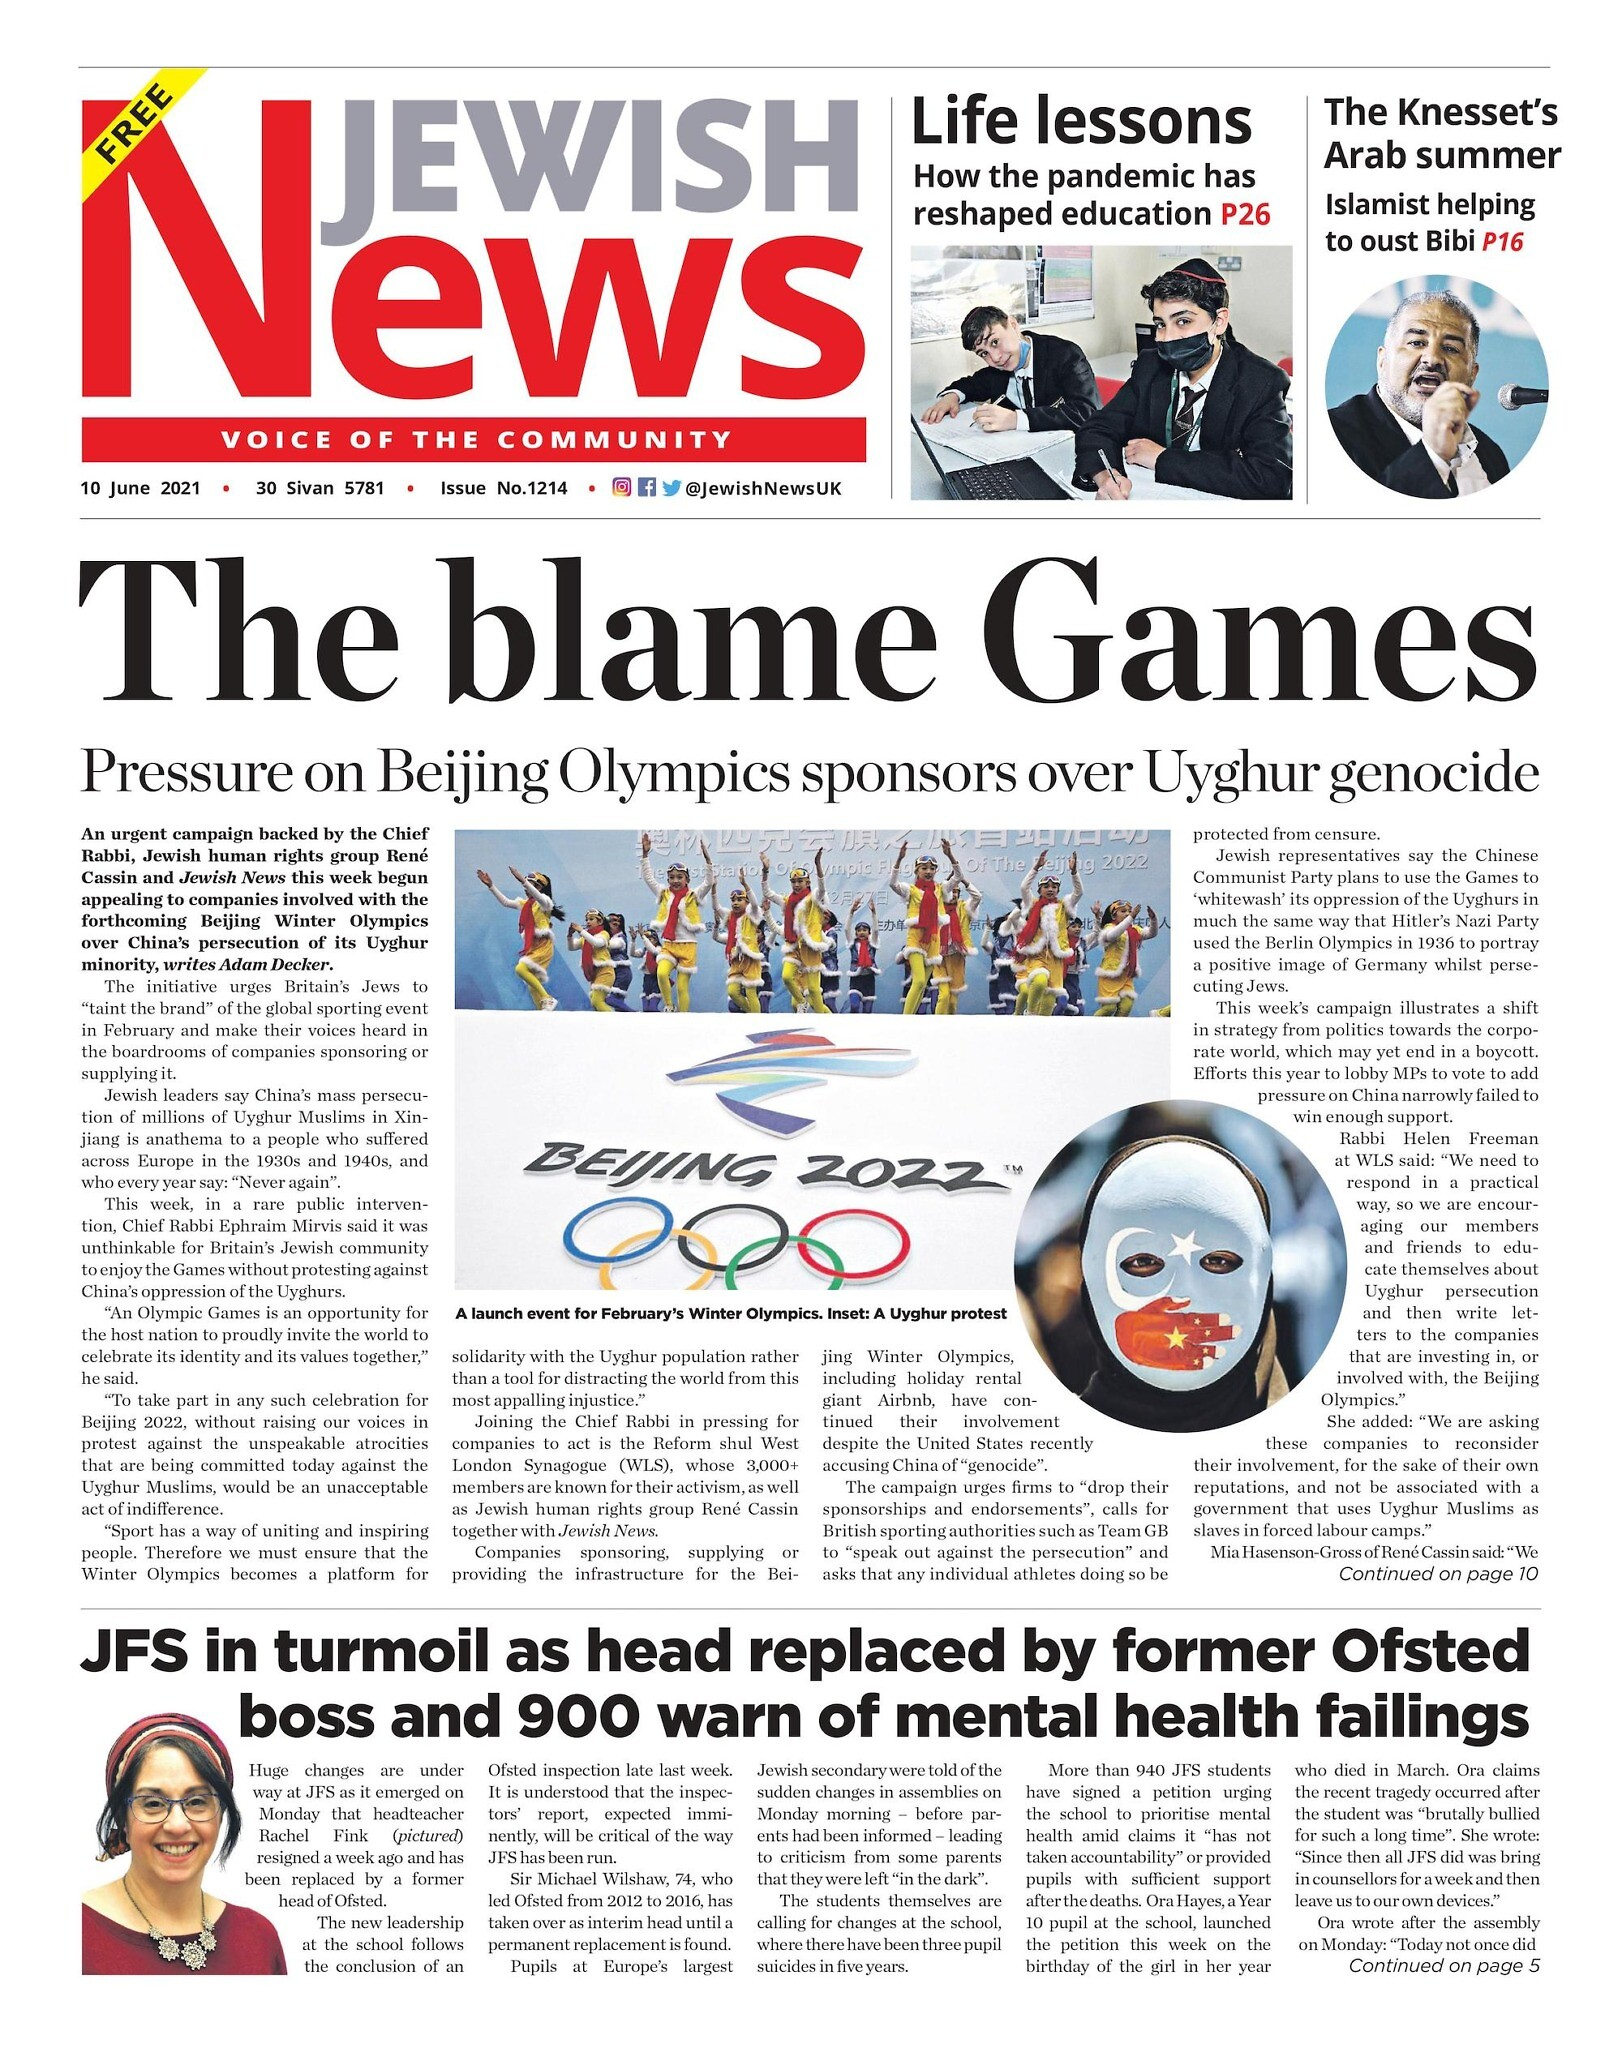 This week's front page